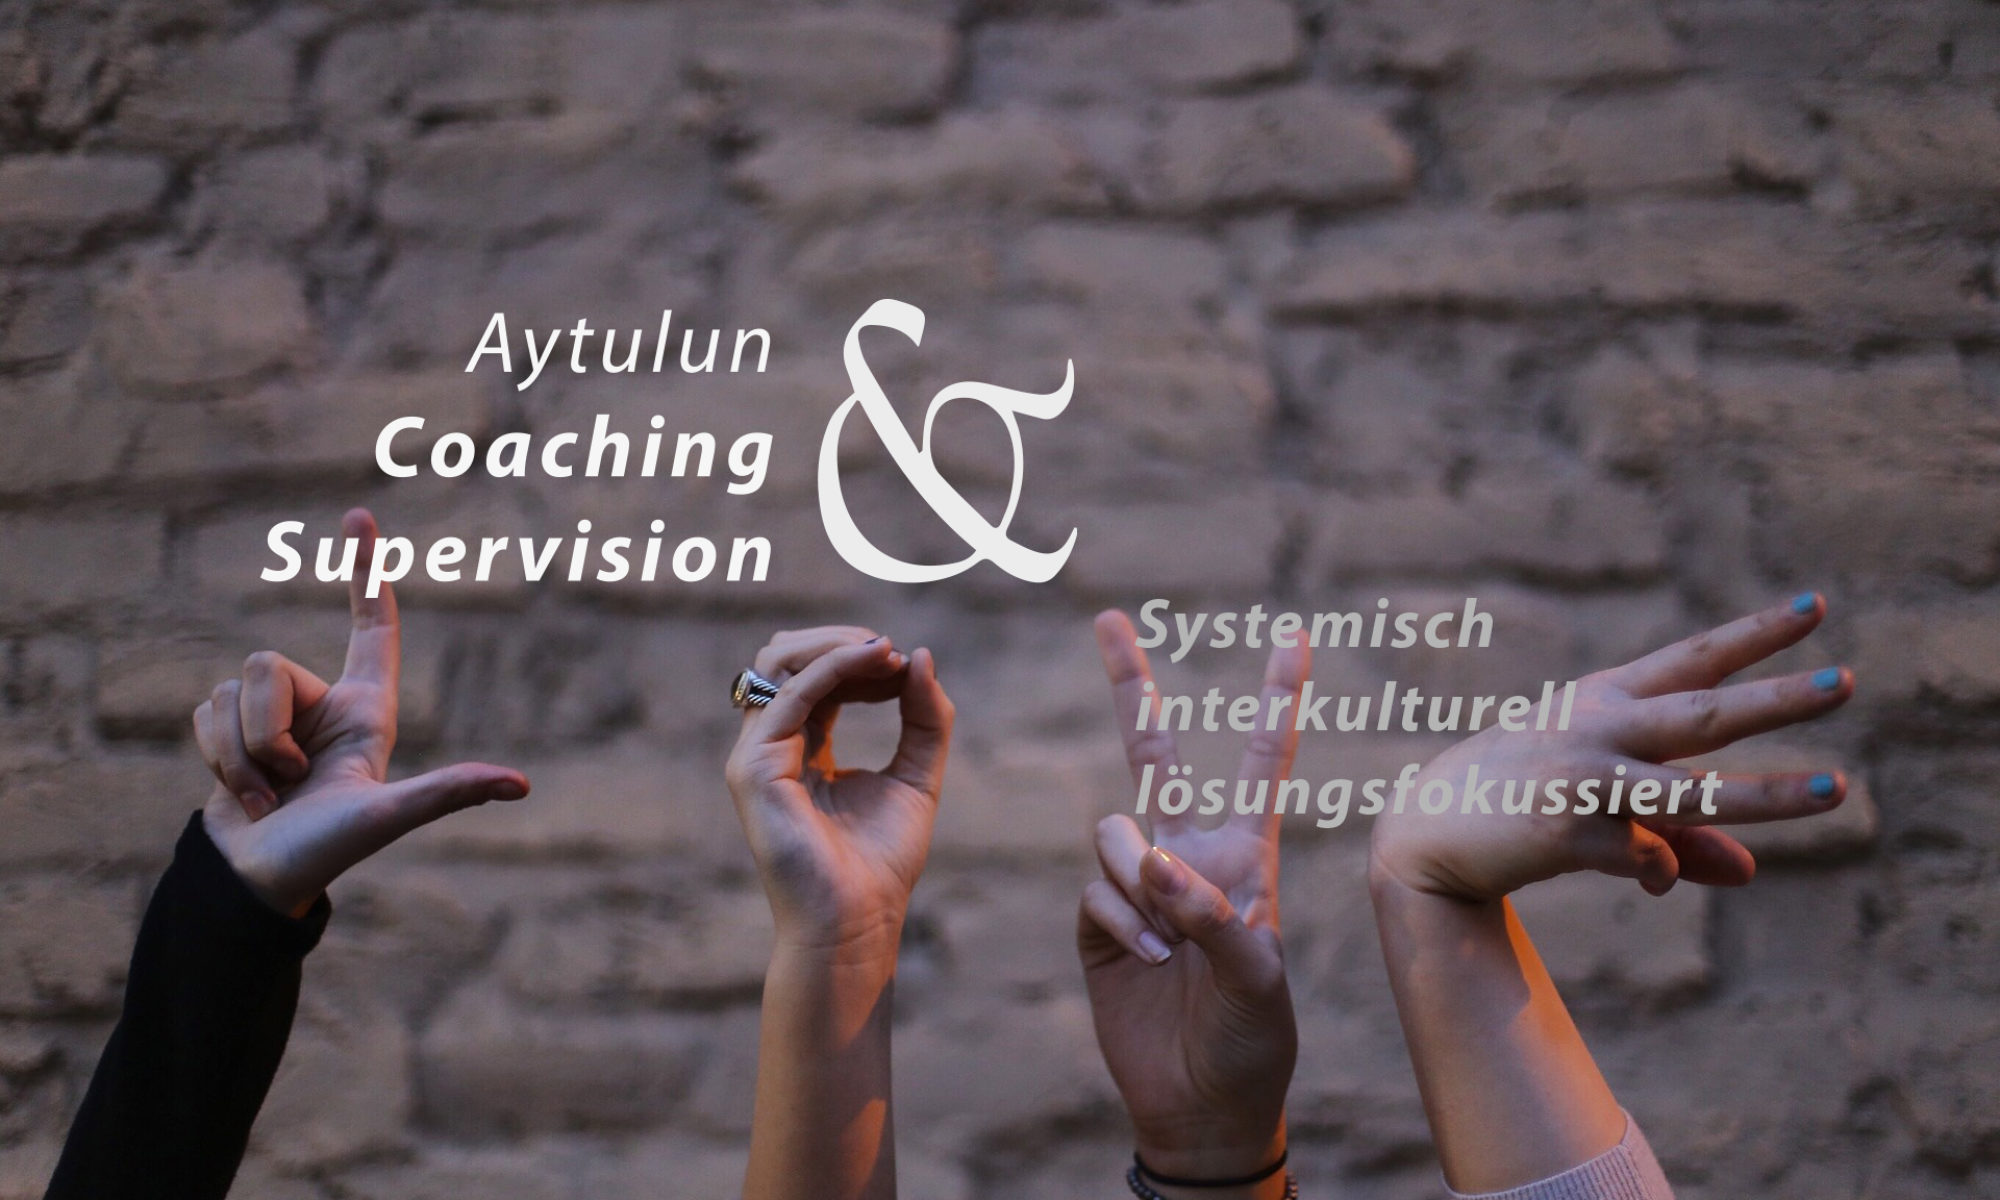 Aytulun Coaching & Supervision | Köln